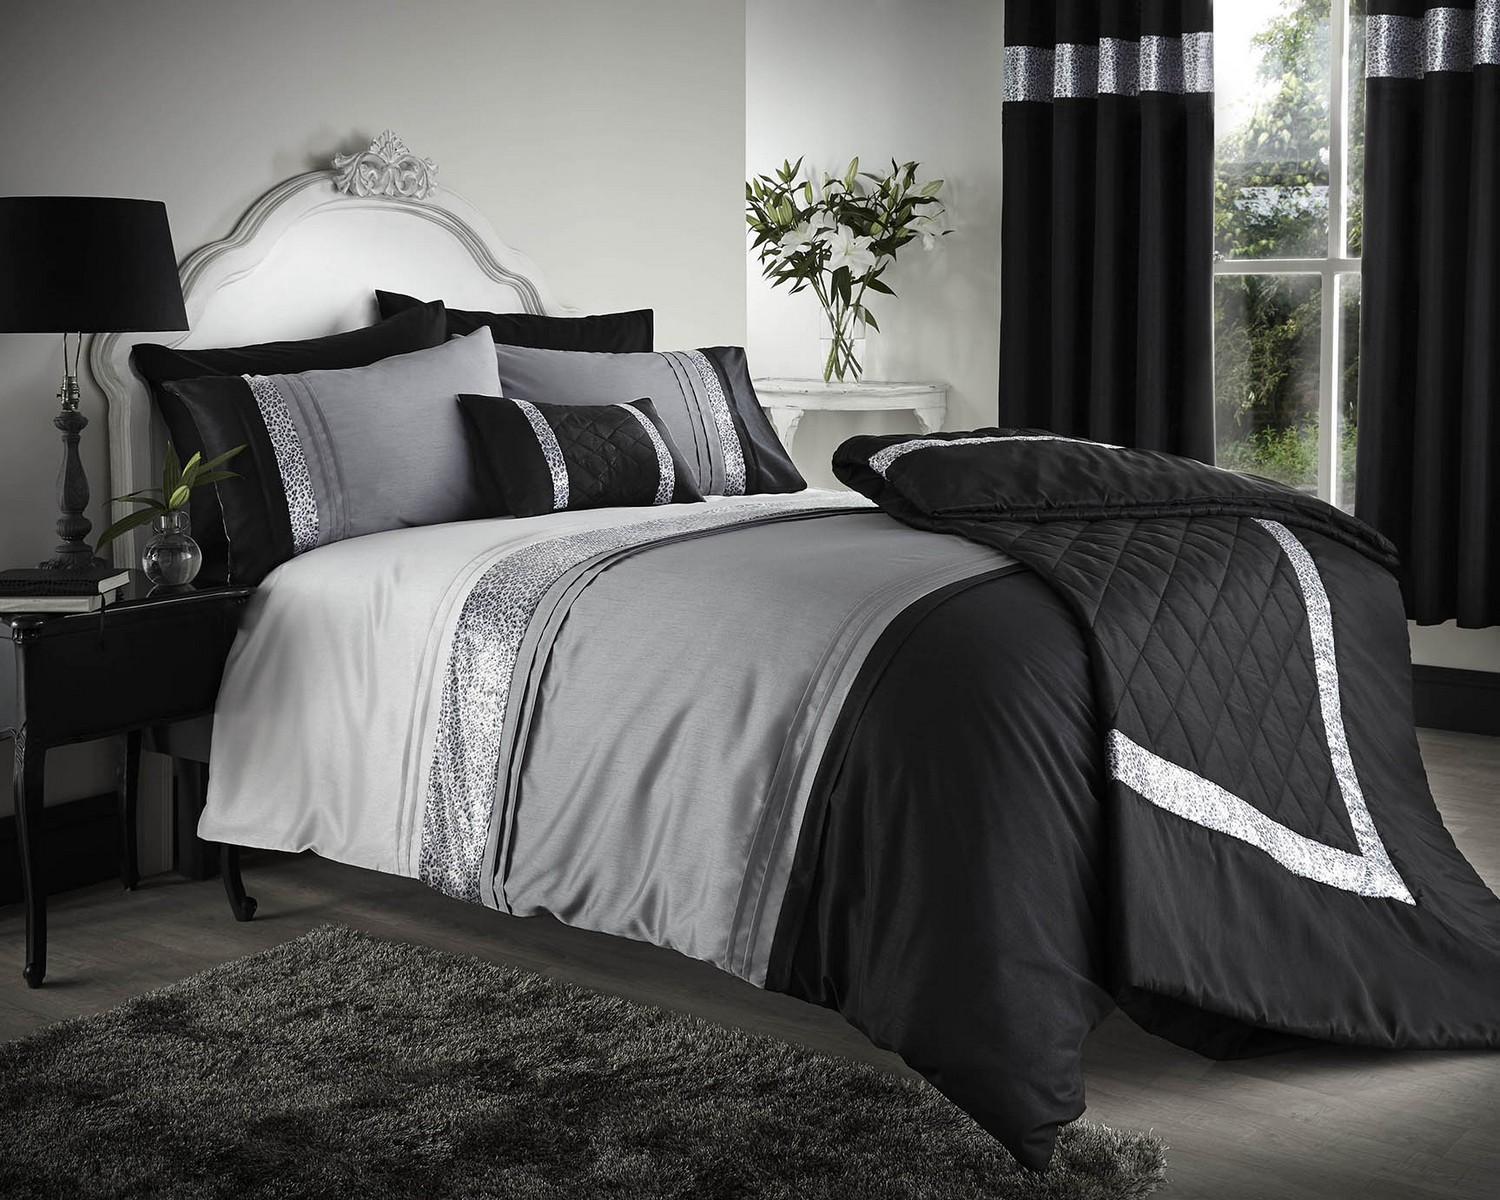 Double Doona Covers Black Grey Silver Duvet Covers Bedding Bed Set Double